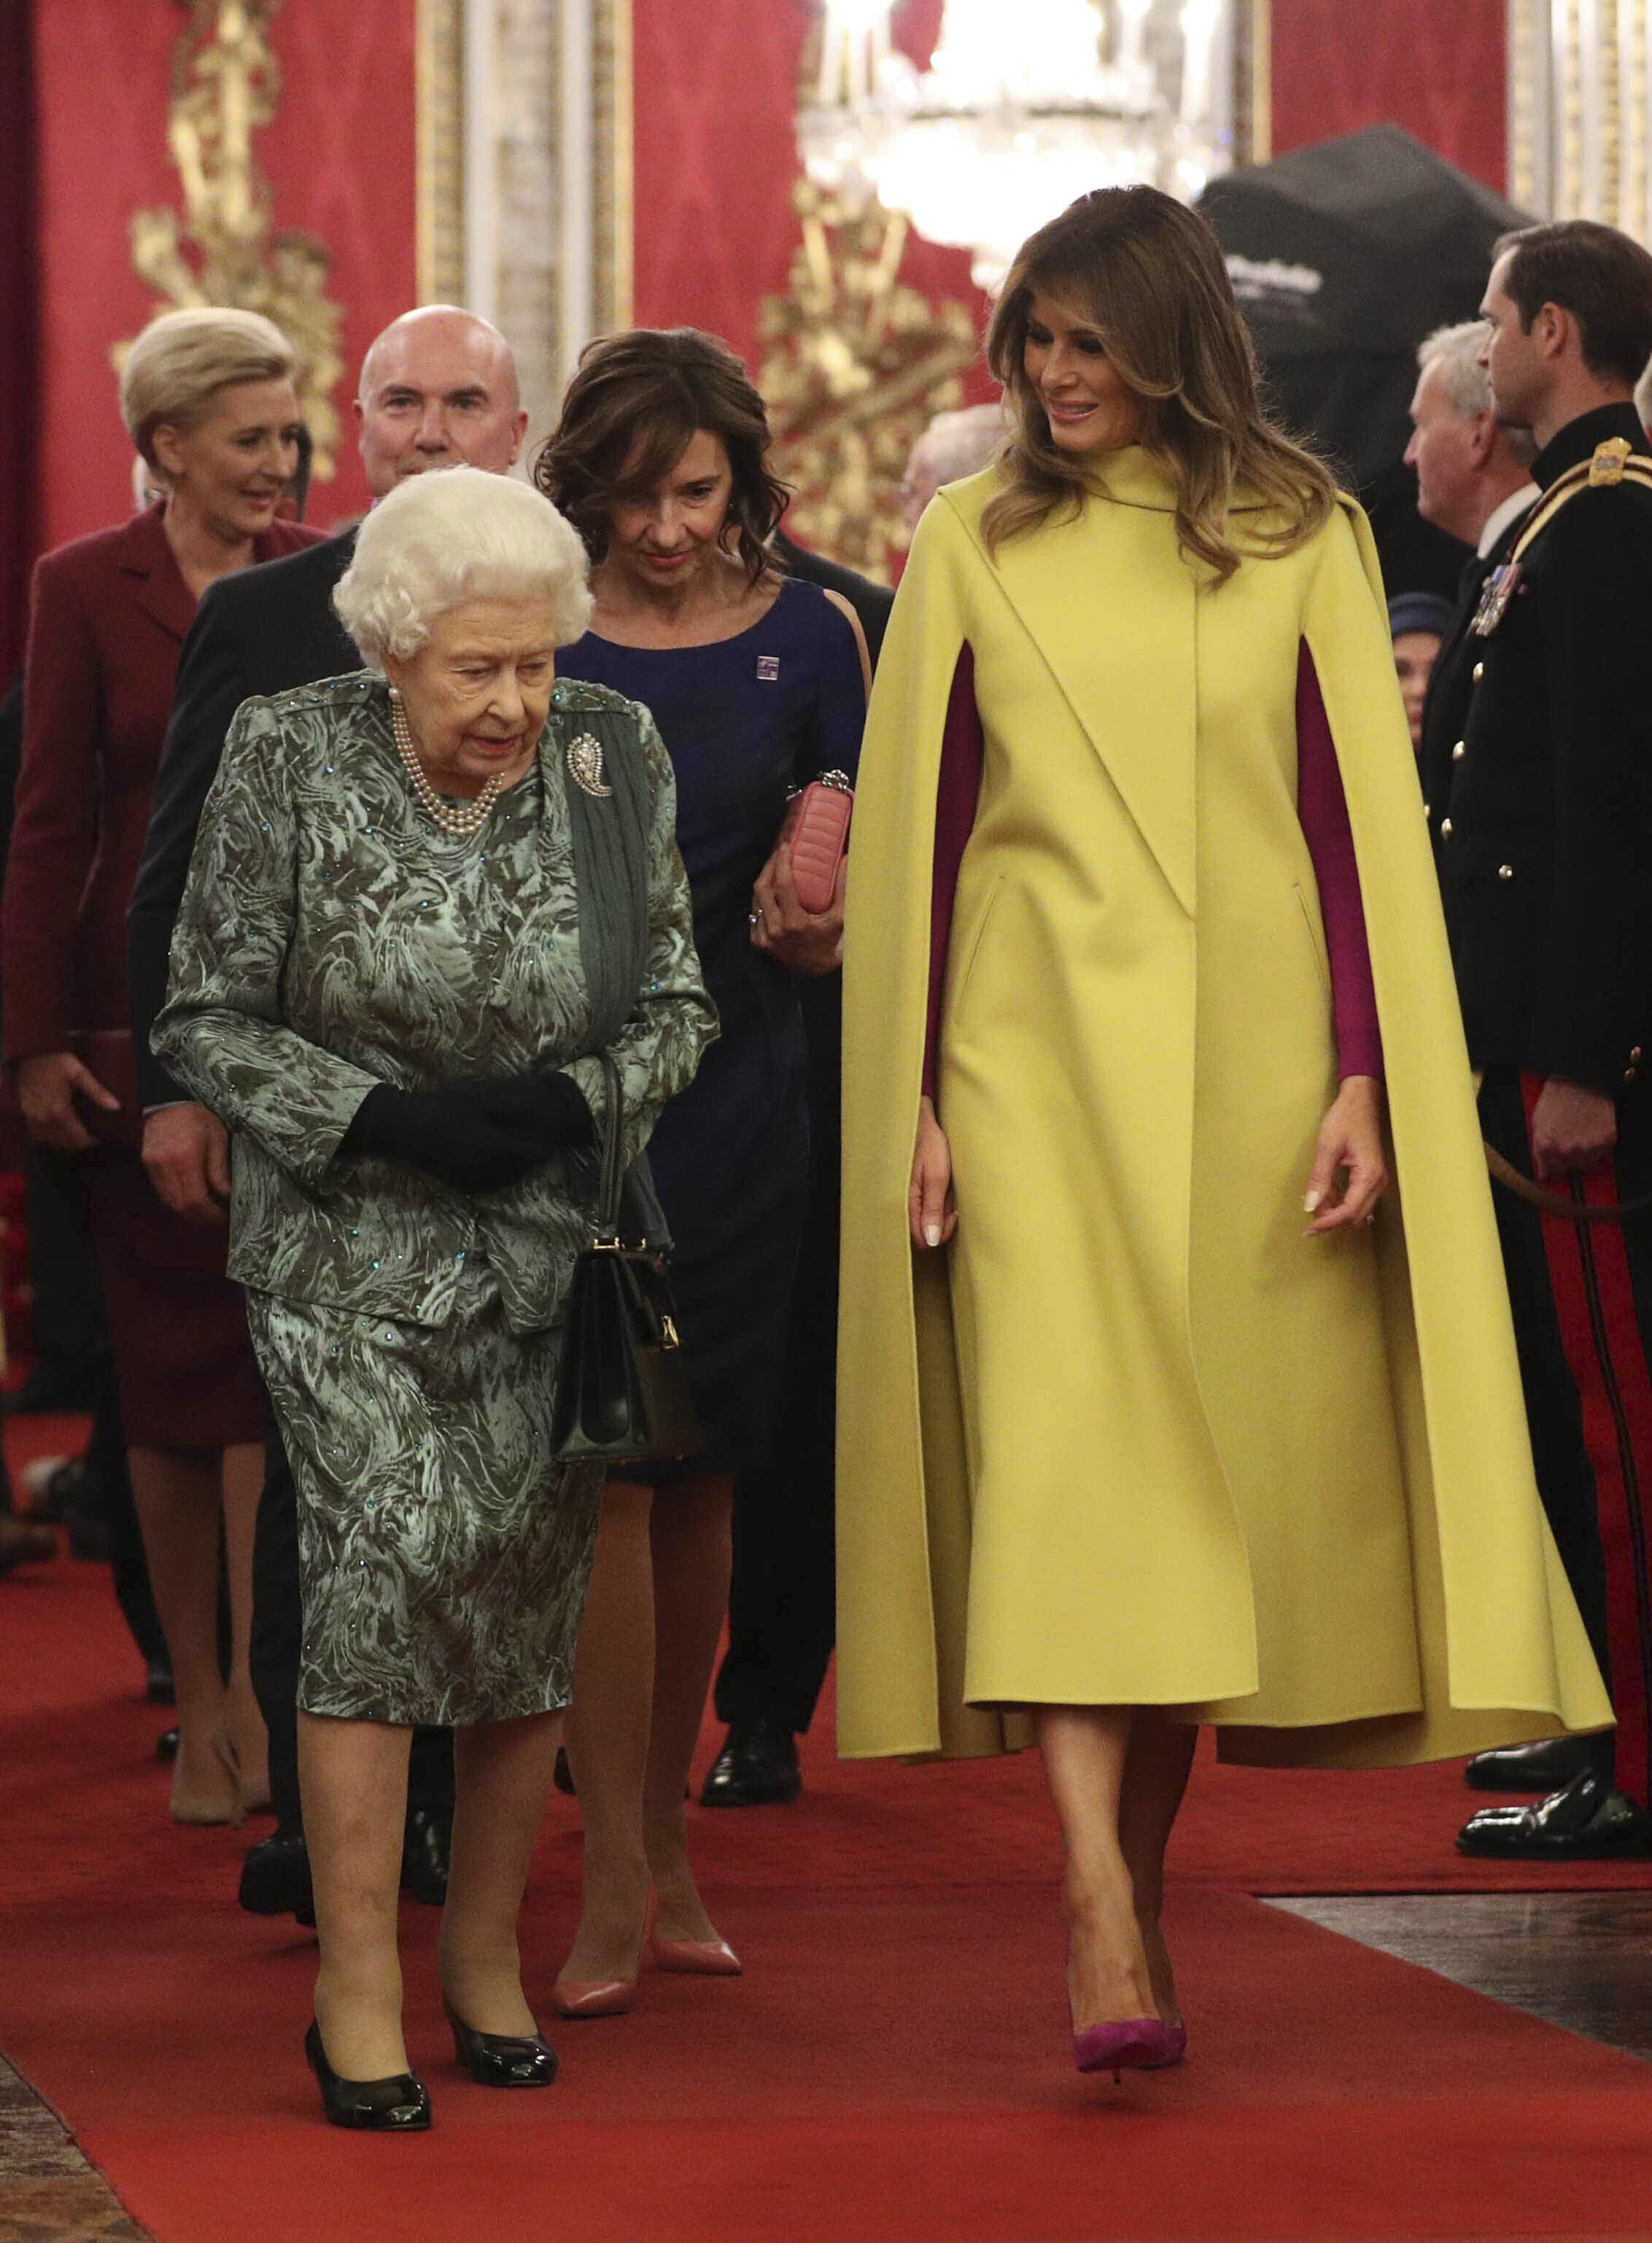 Photo by: KGC-512/STAR MAX/IPx 2019 12/3/19 The Queen, accompanied by other Members of the Royal Family, hosts a reception for NATO leaders, spouses or partners, and delegations, at Buckingham Palace in London, England. Here, Queen Elizabeth, Melania Trump